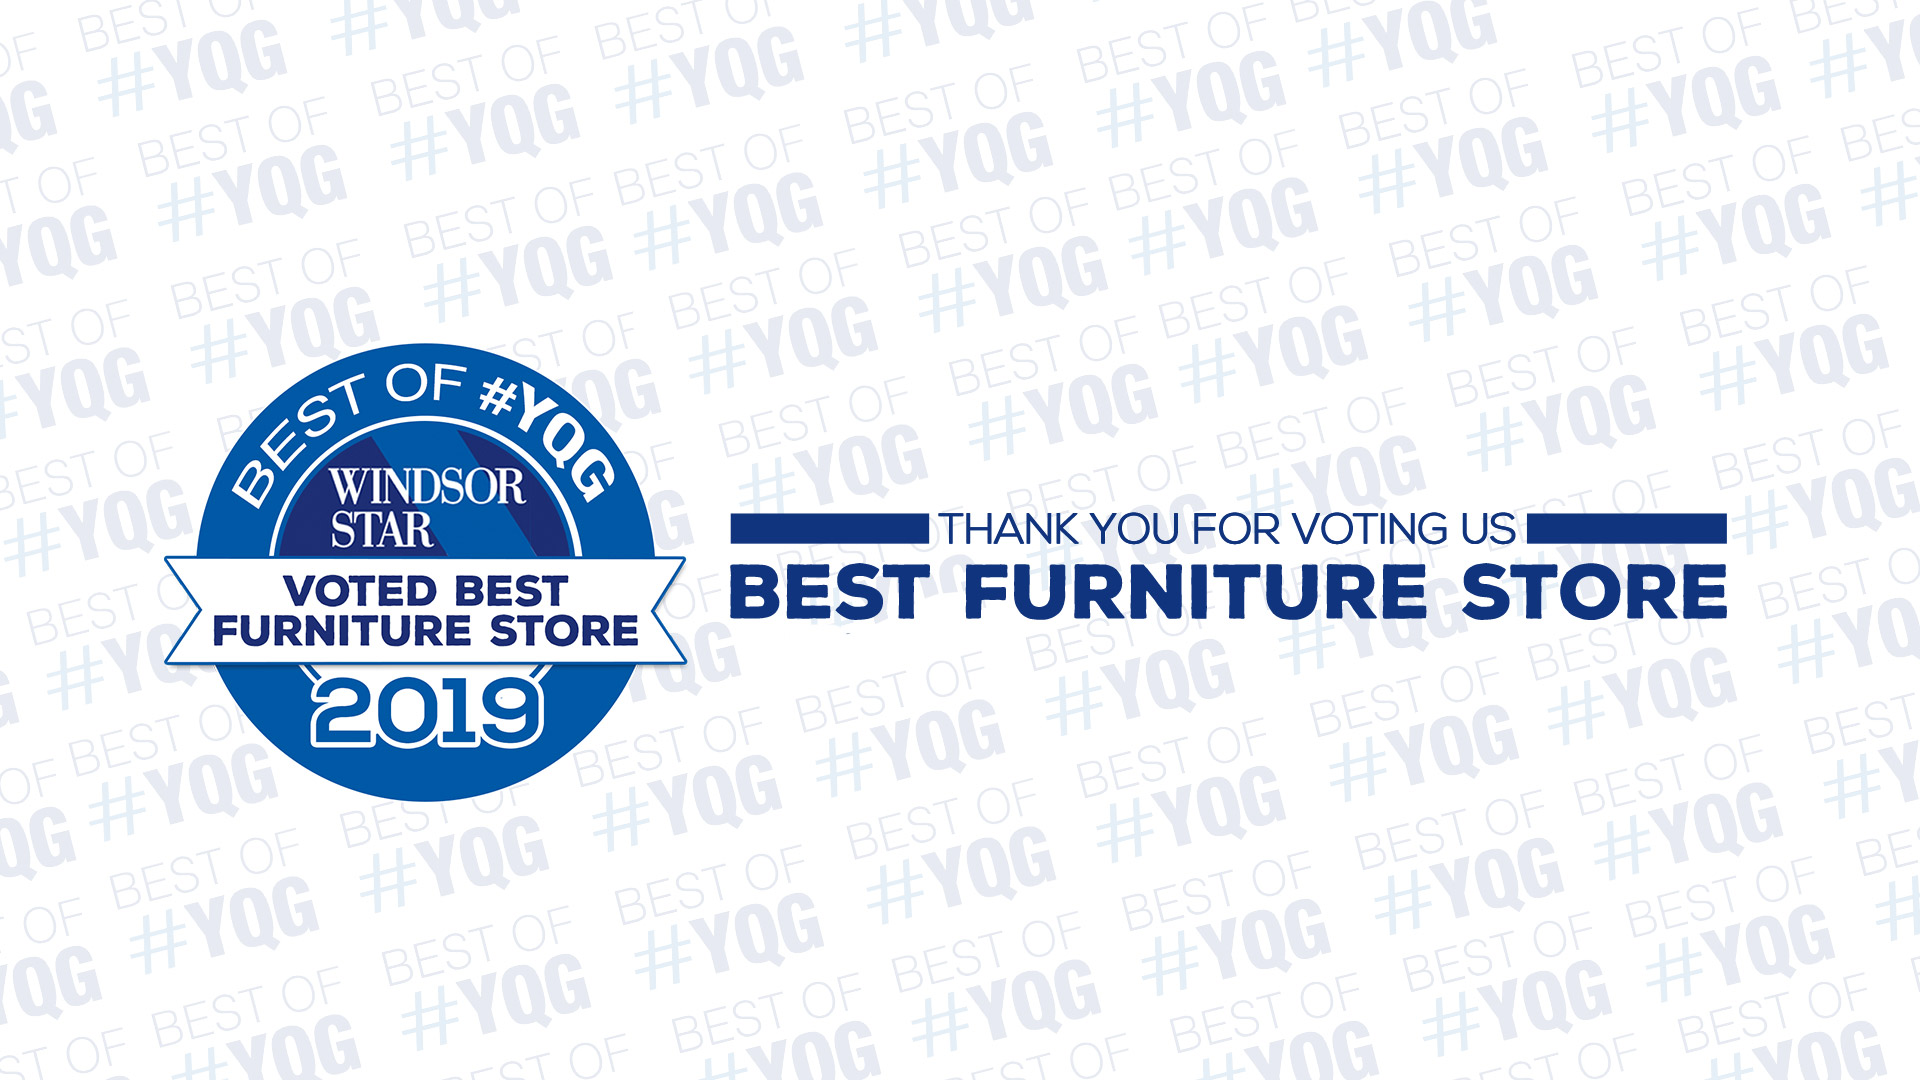 Best Furniture Store Windsor Coulters Furniture Windsor Star YQG Award Home